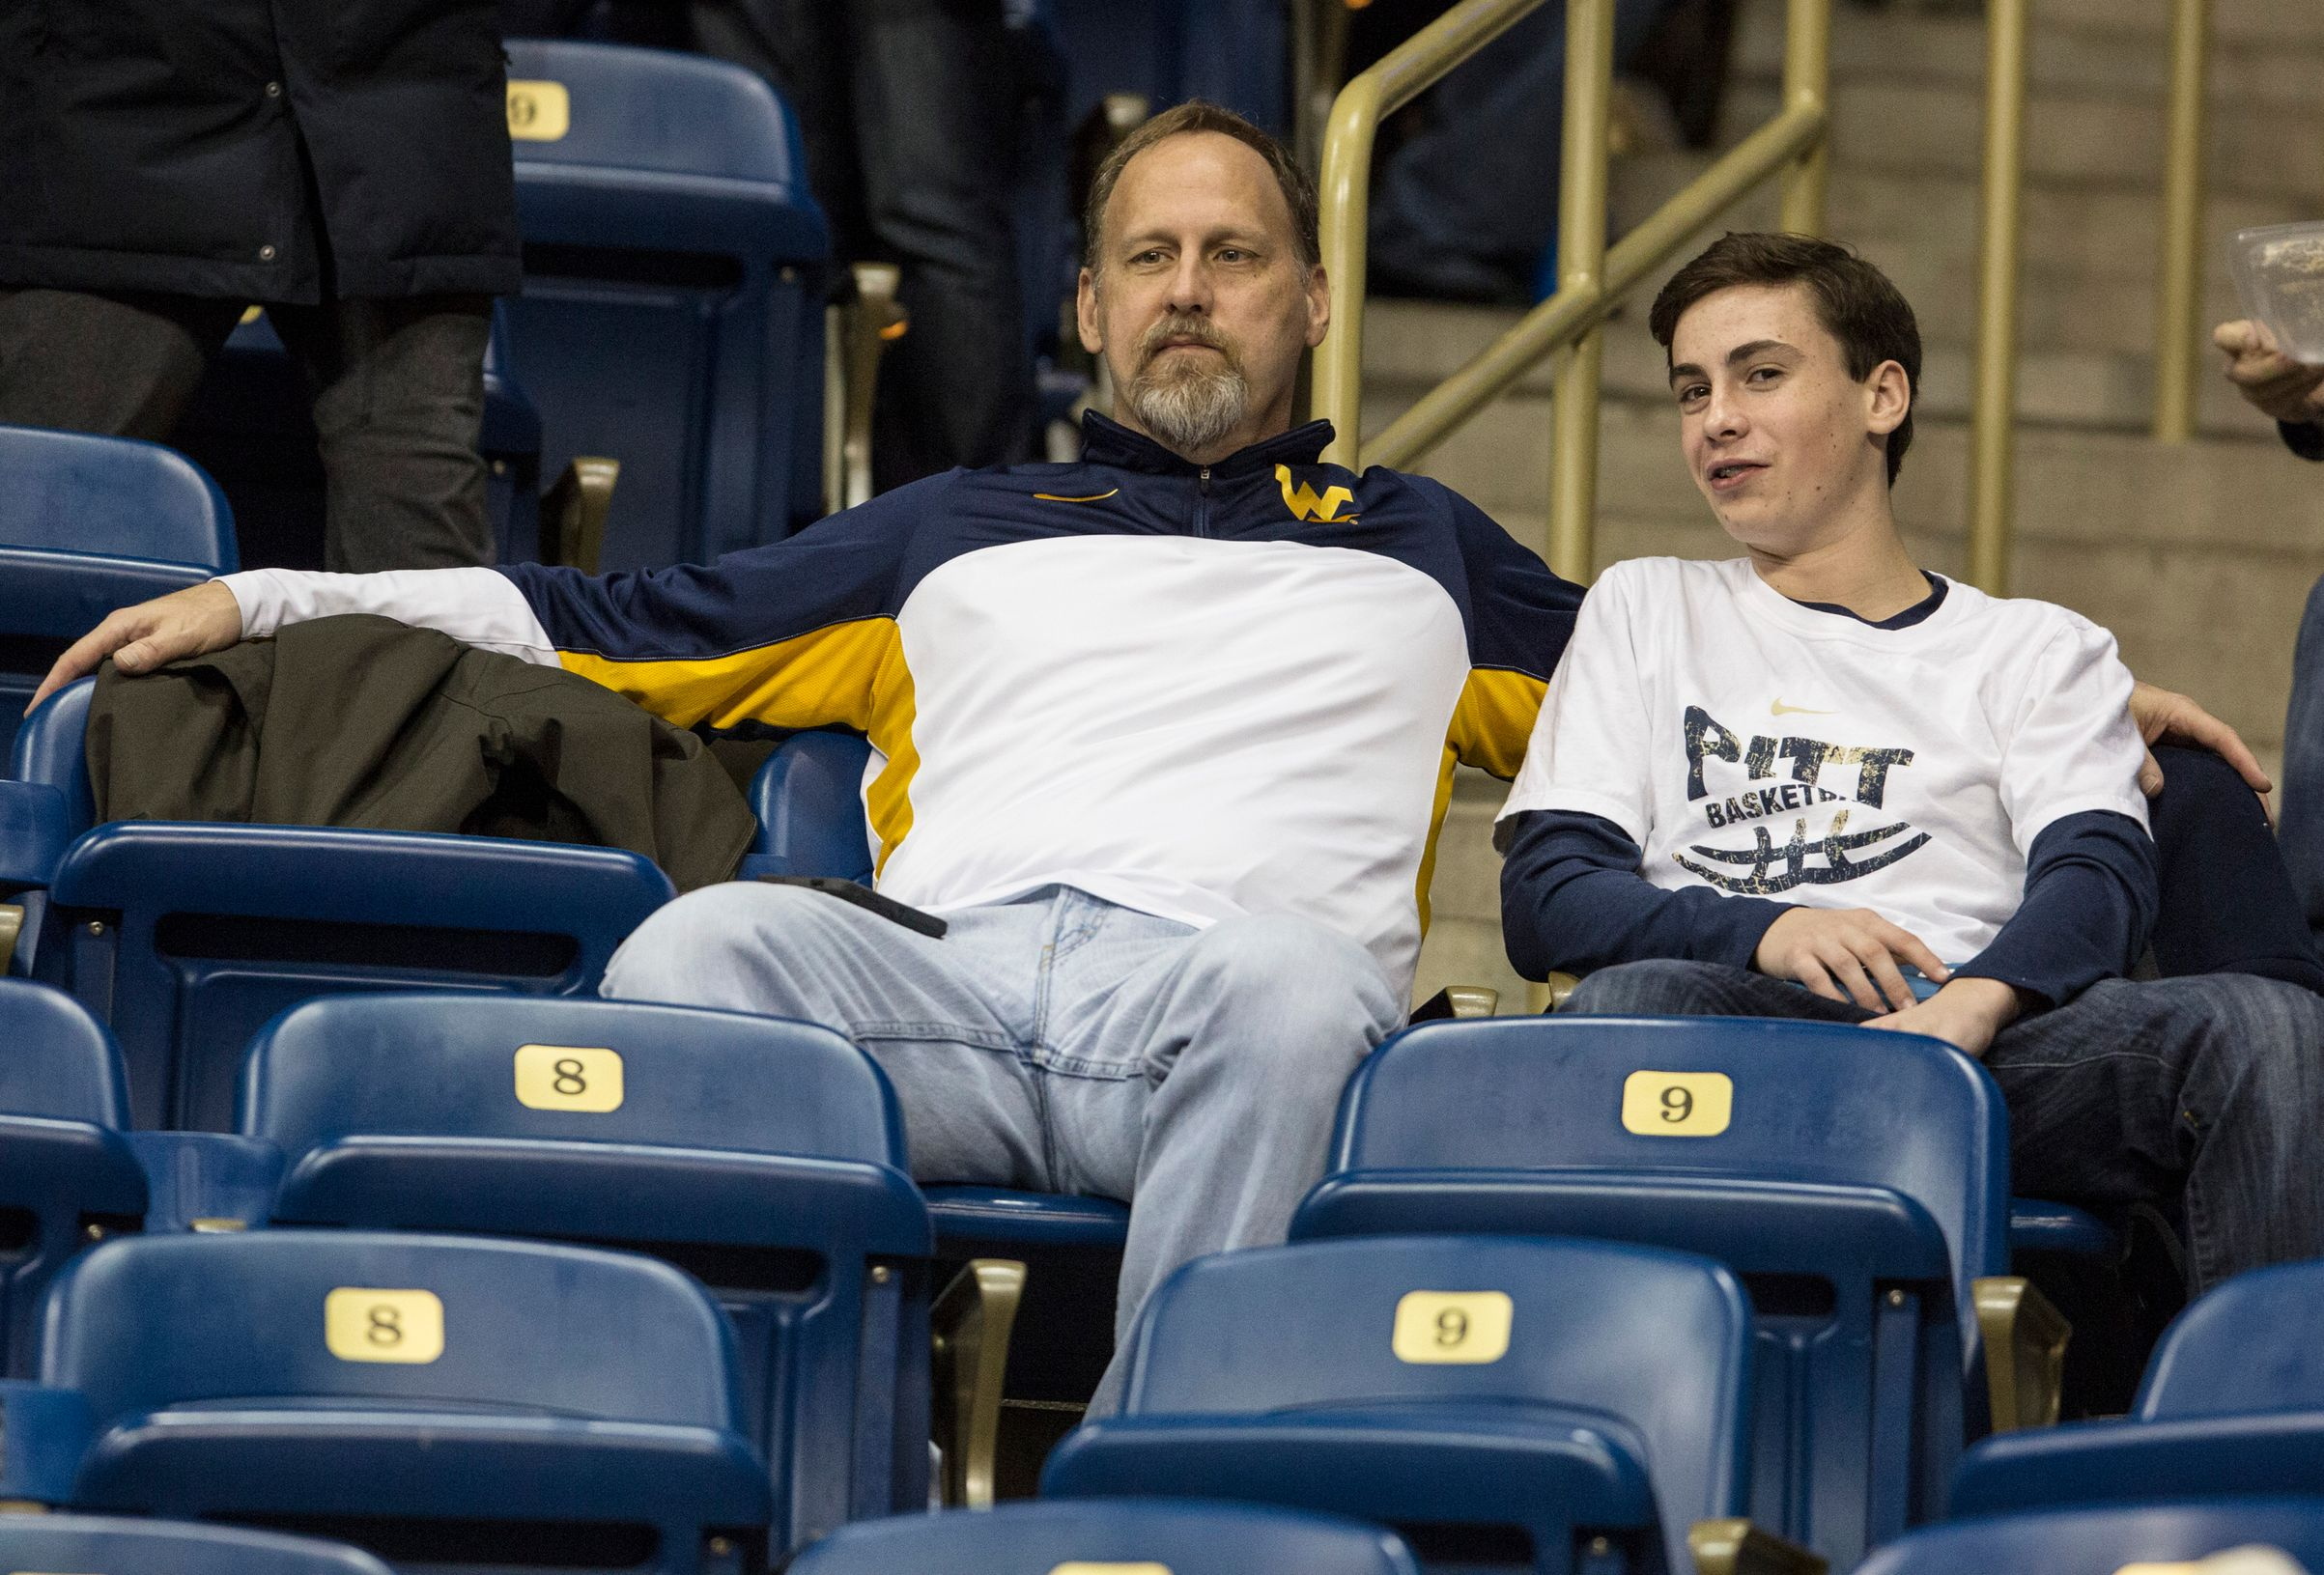 Pitt Game Father and Son